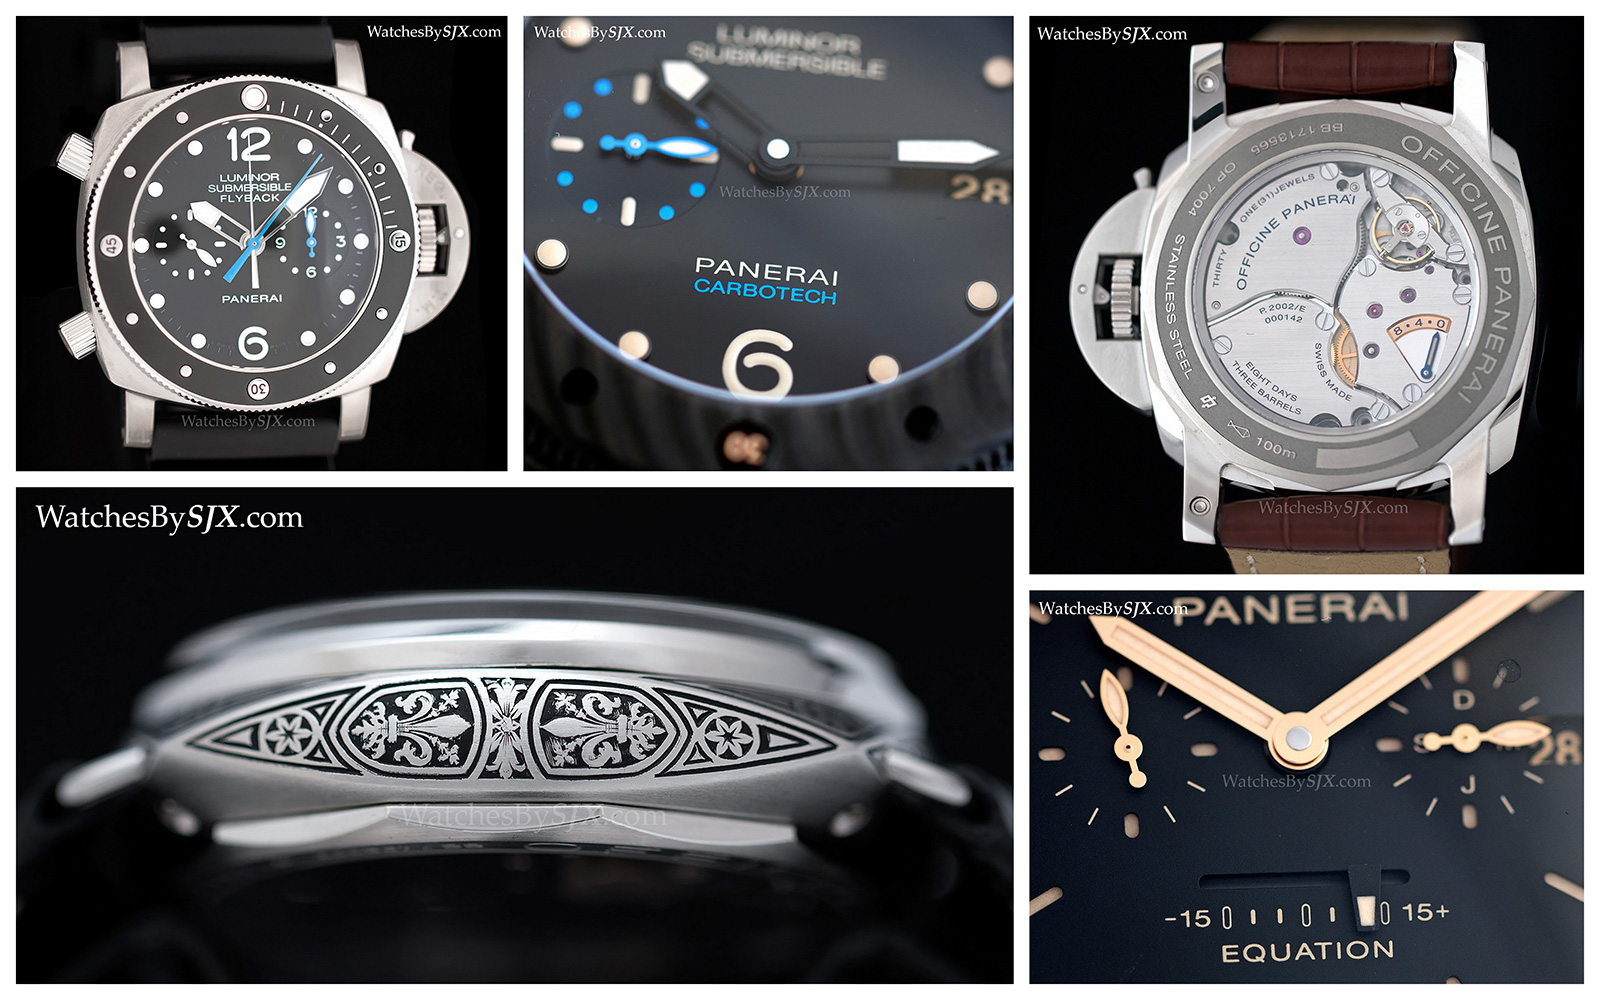 Panerai-SIHH-2015-collage